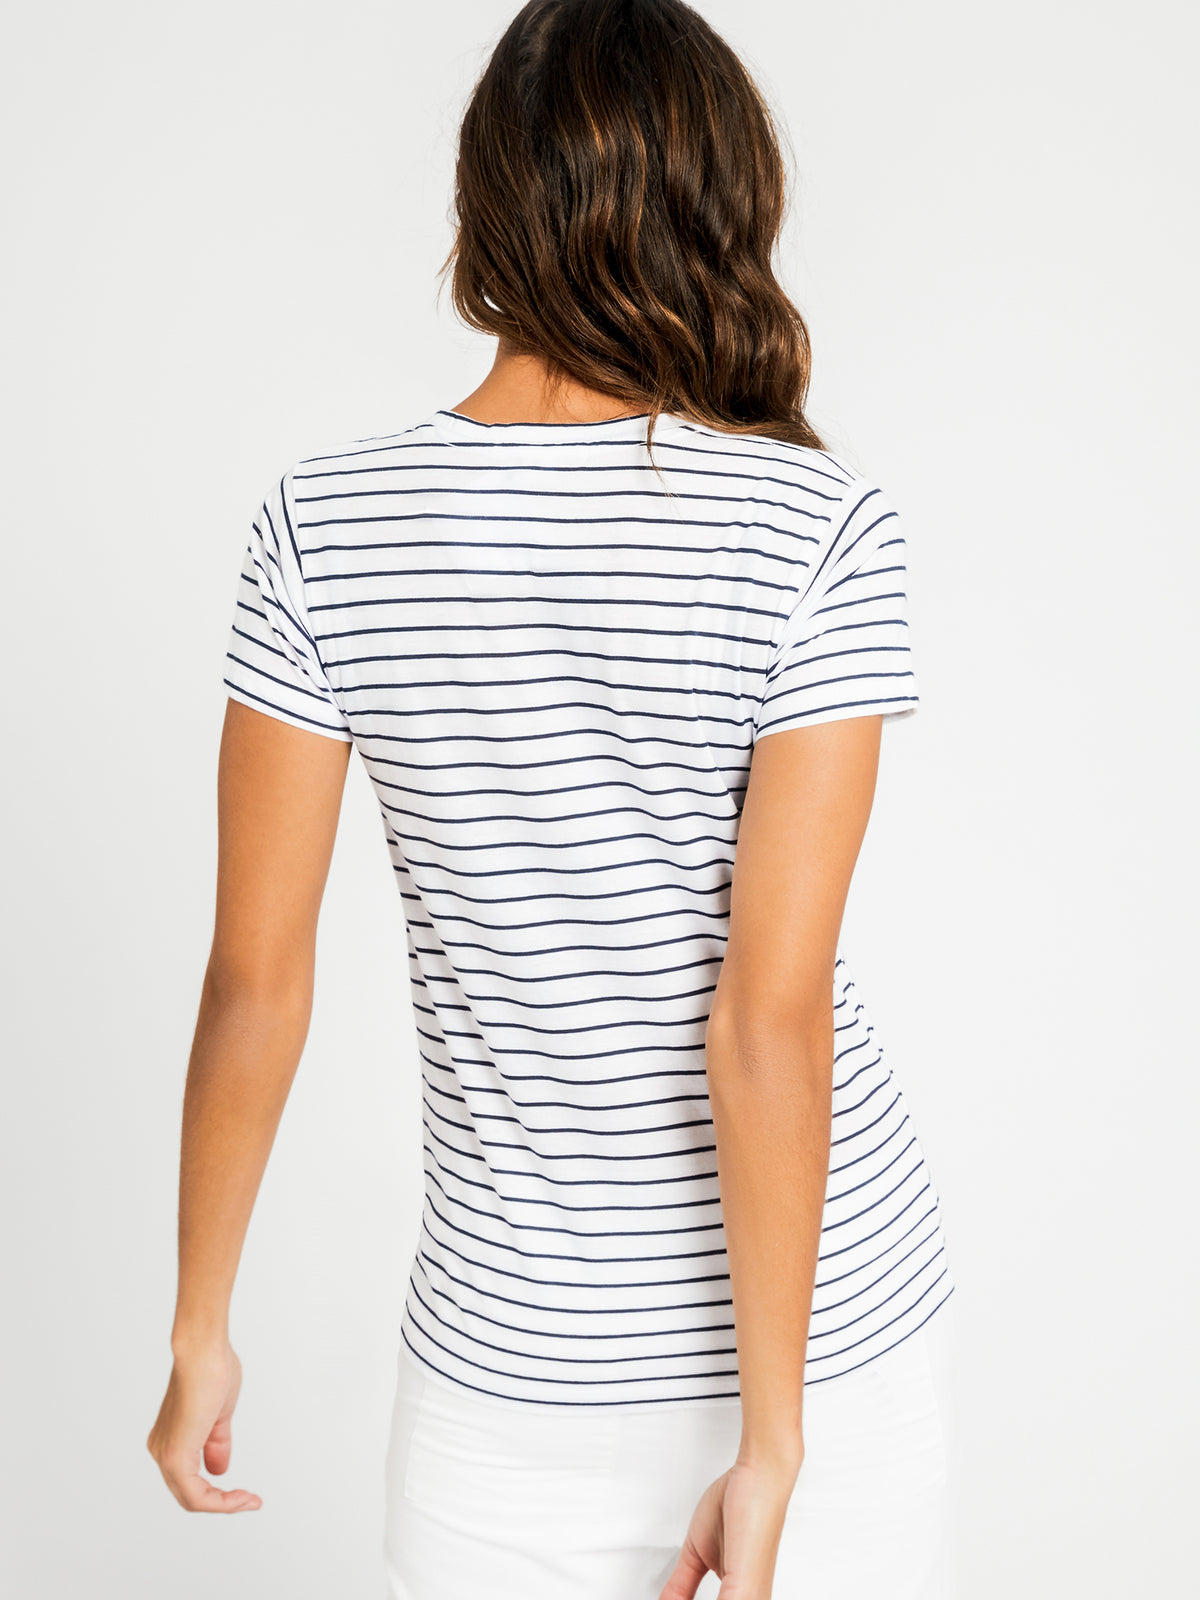 Harper Basic Crew T-Shirt in Navy Stripe